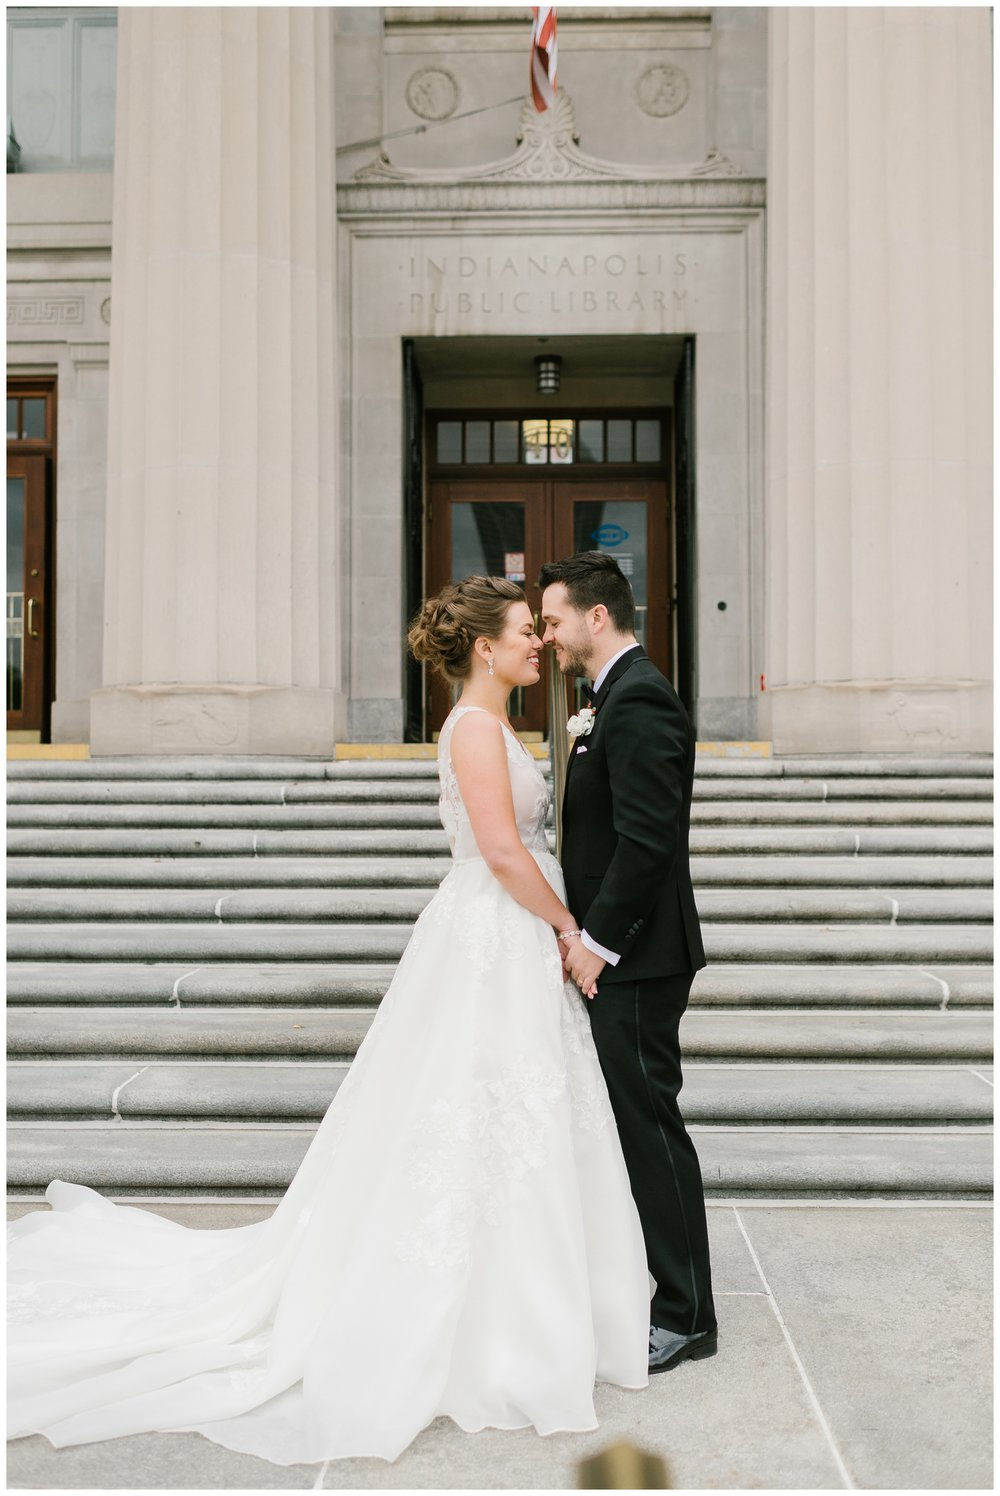 Rebecca_Shehorn_Photography_Indianapolis_Wedding_Photographer_7737.jpg